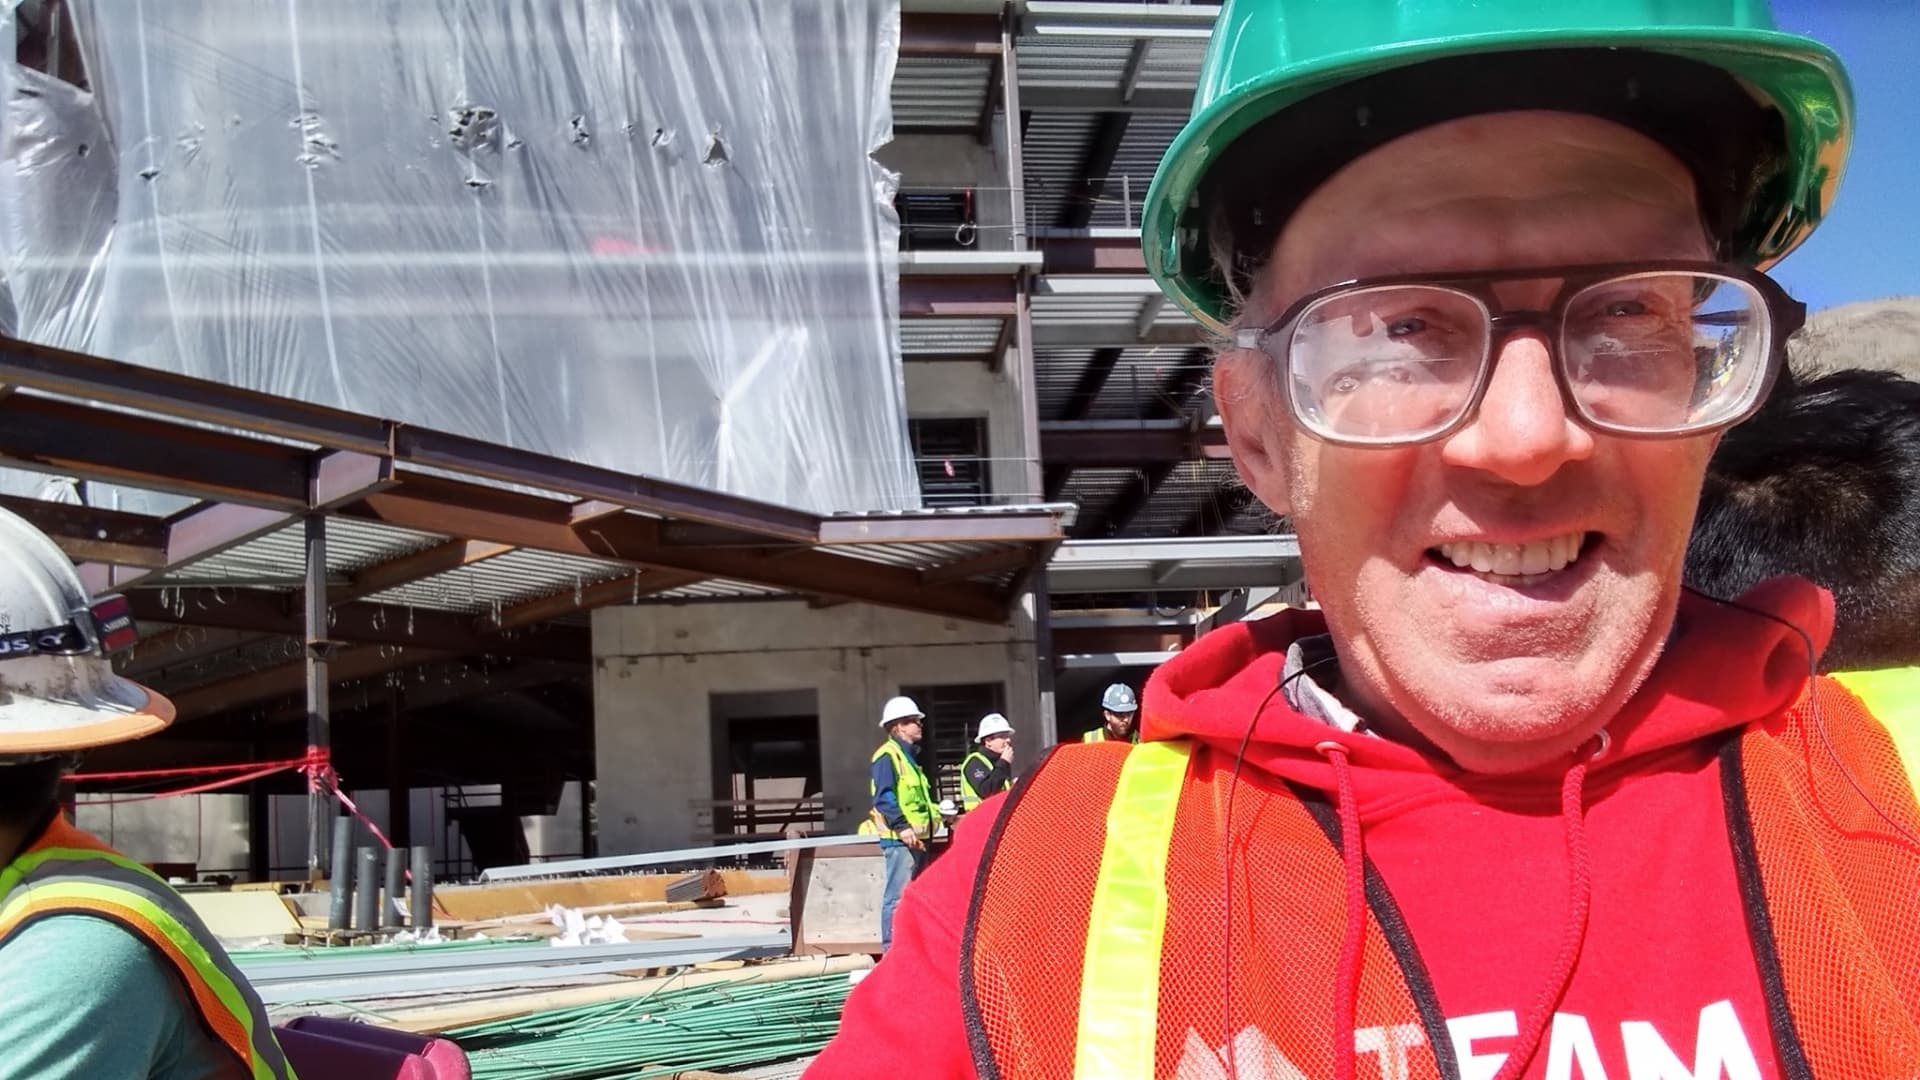 Randy Chase, 57, does masonry work on construction crews. With unemployment benefits stalled since April and no savings left, he's been living in his pickup truck outside of Denver since September, using an electric heater to keep warm.